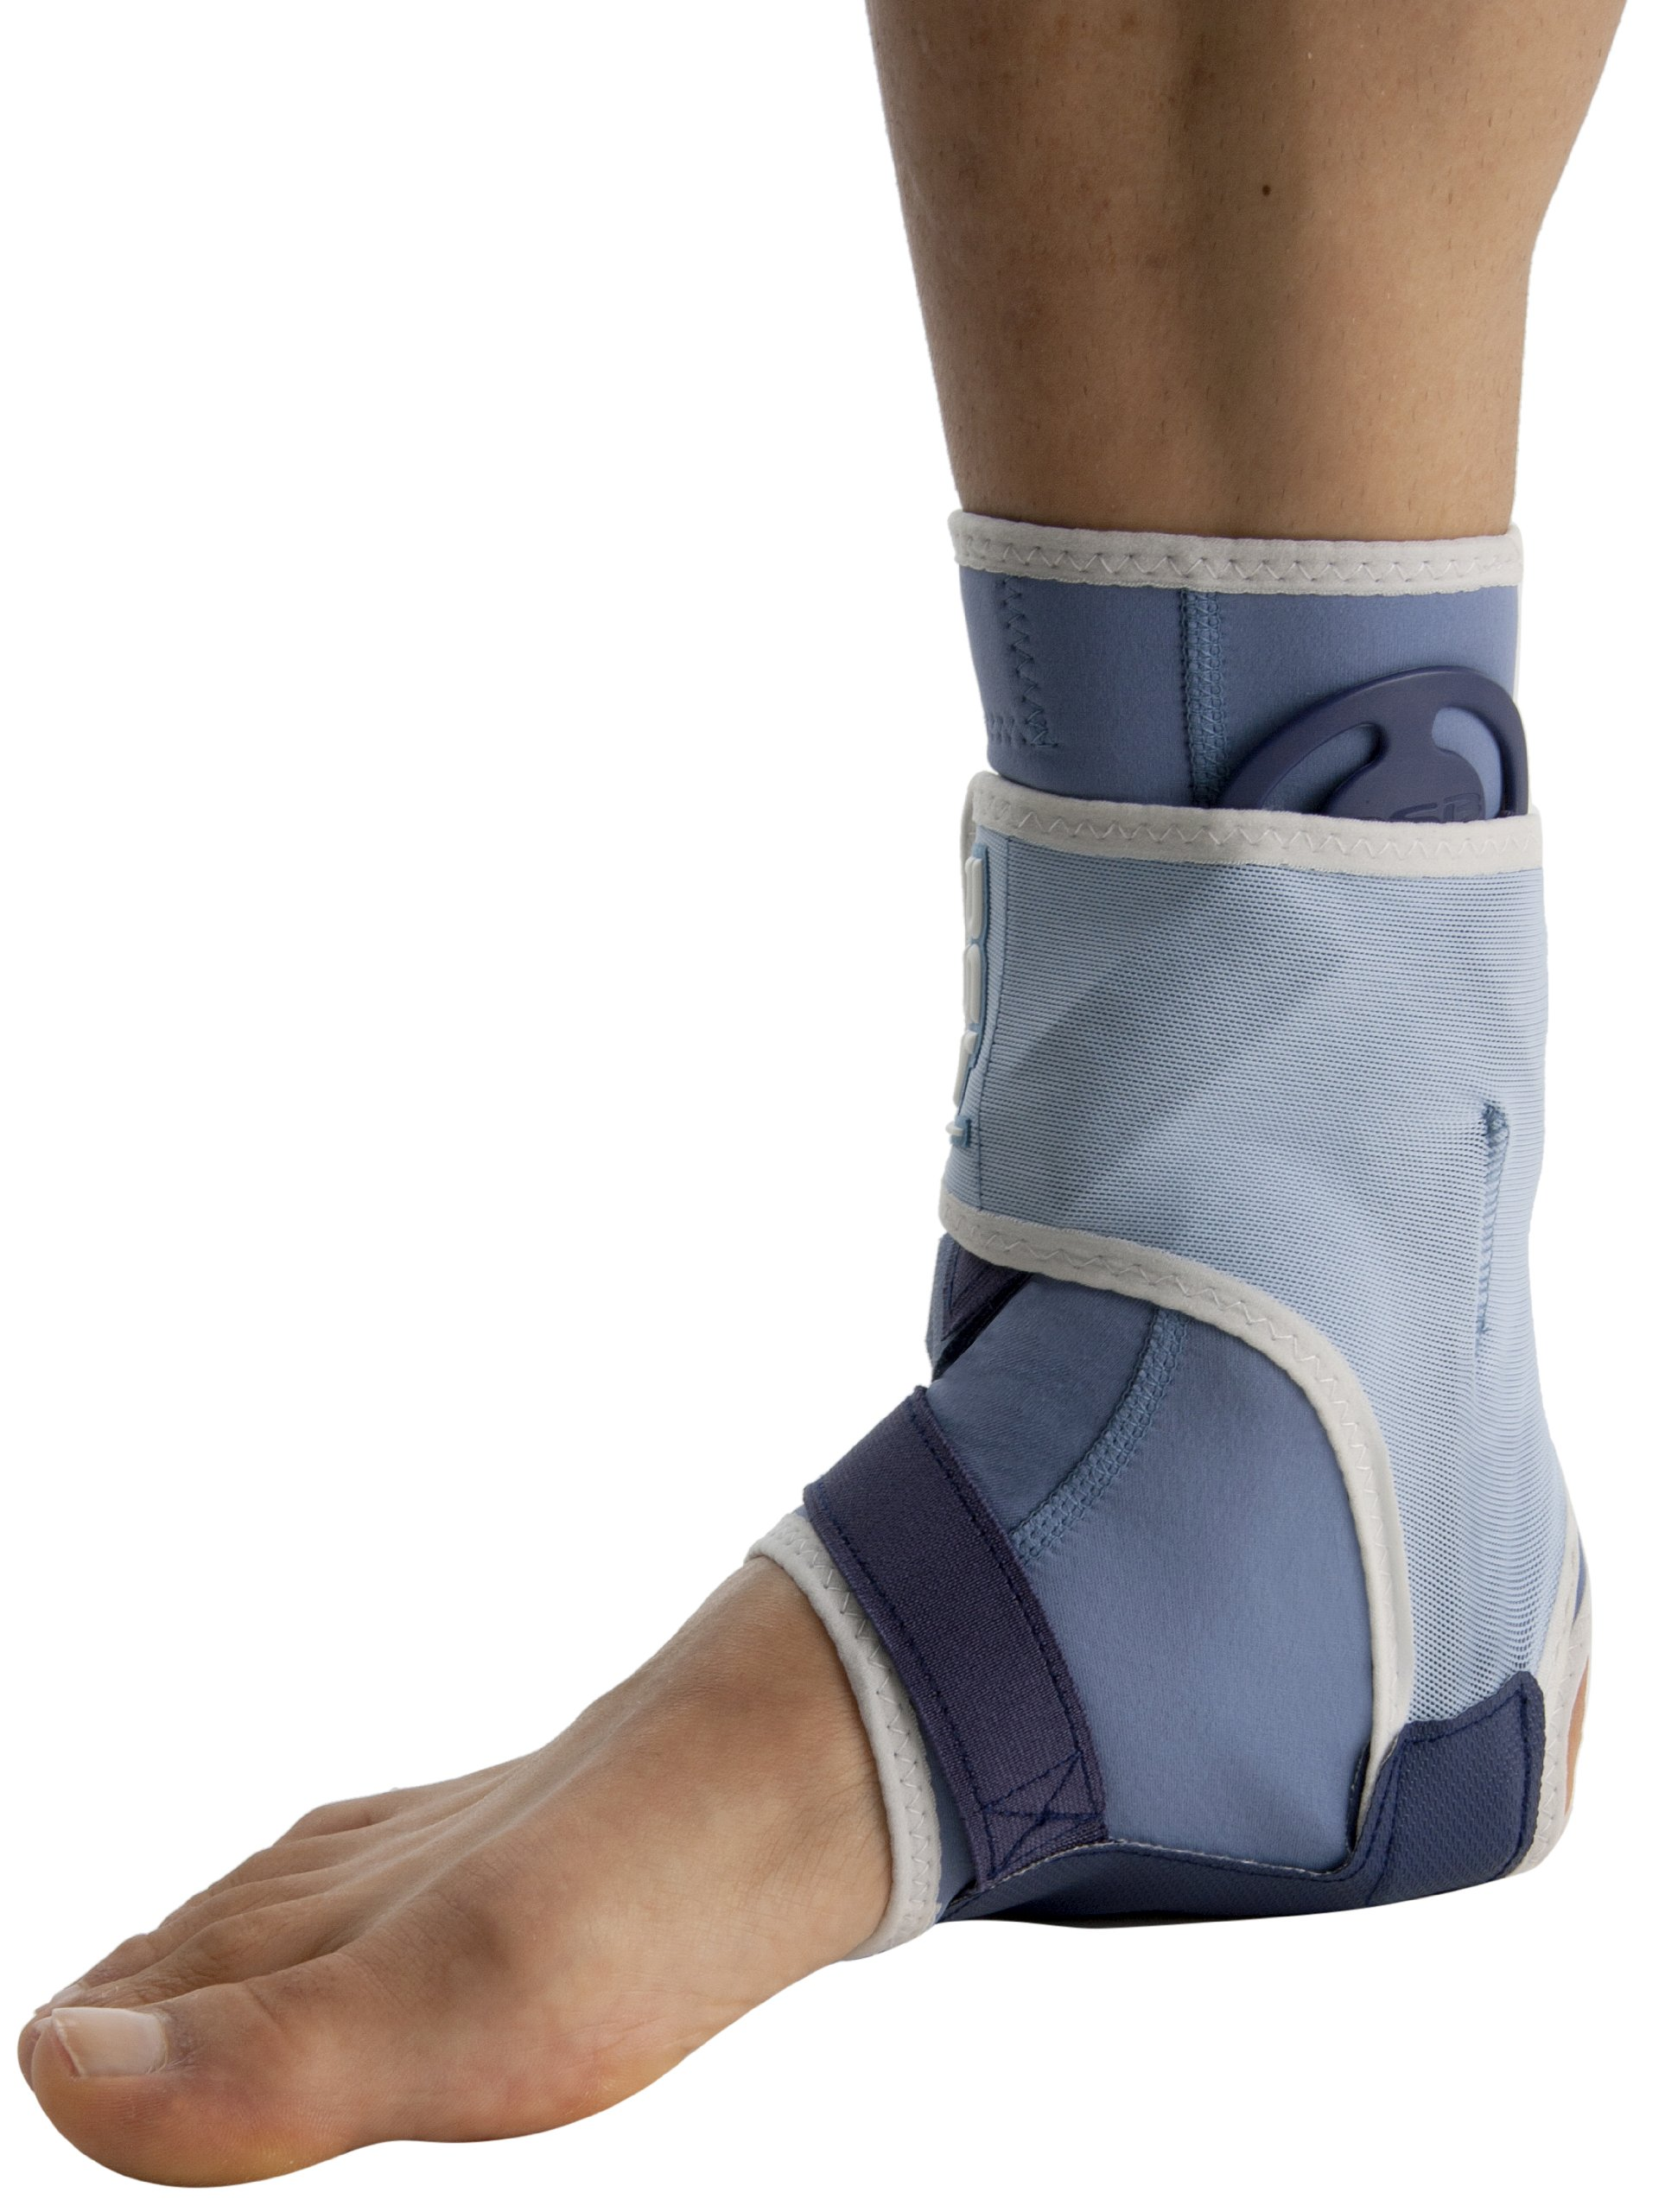 PSB Ankle Brace Medium Left by Physio Room